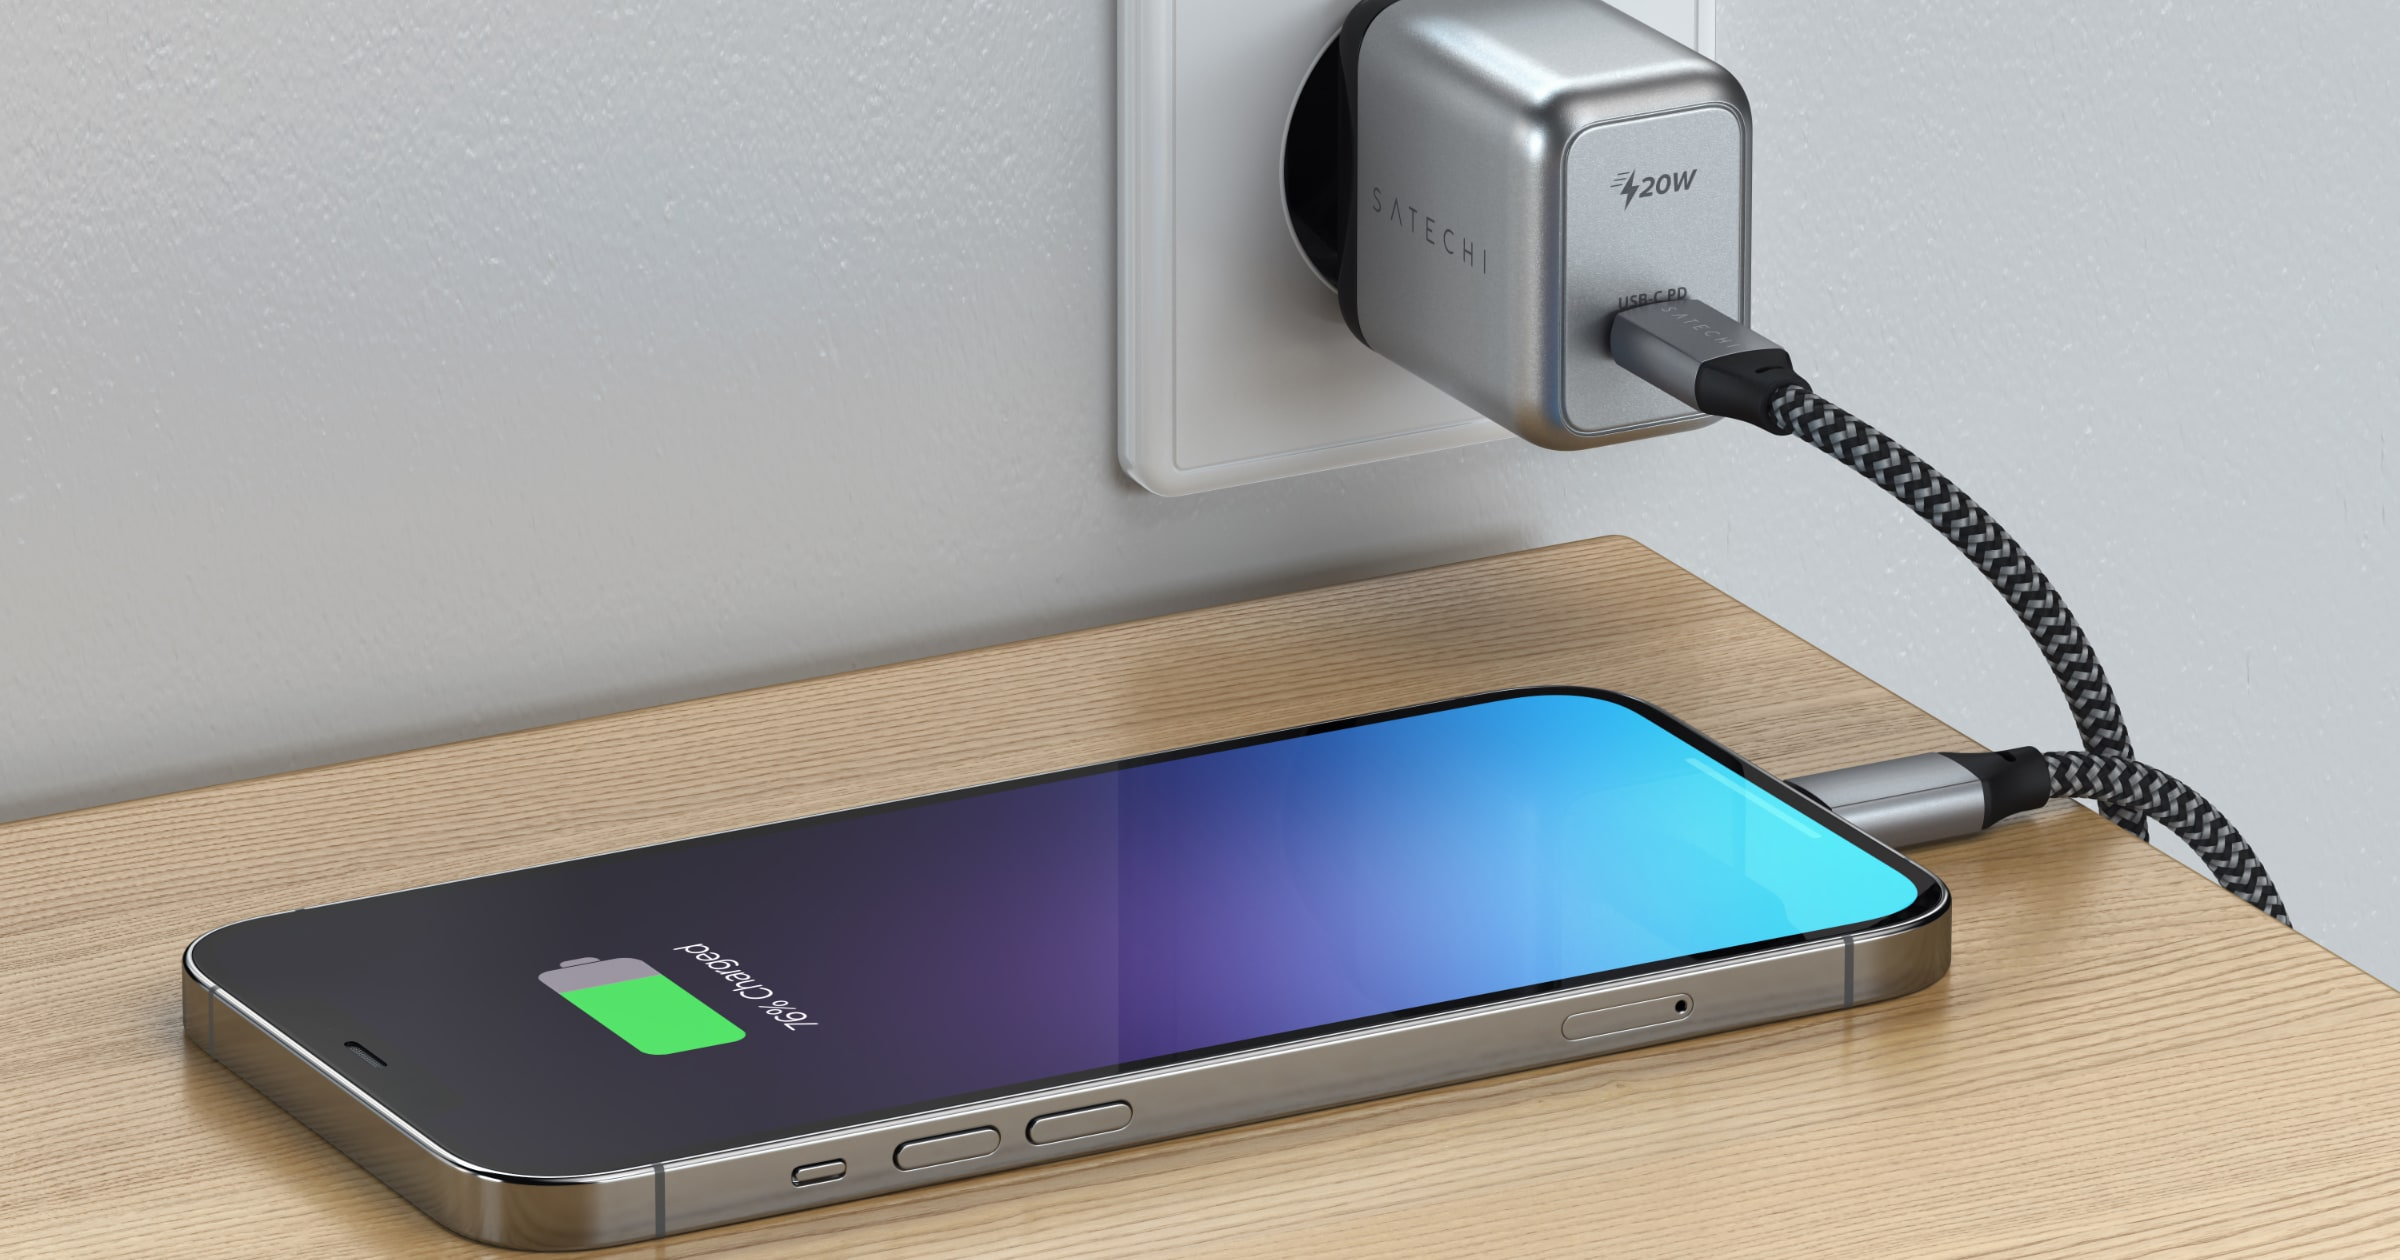 satechi 20W wall charger